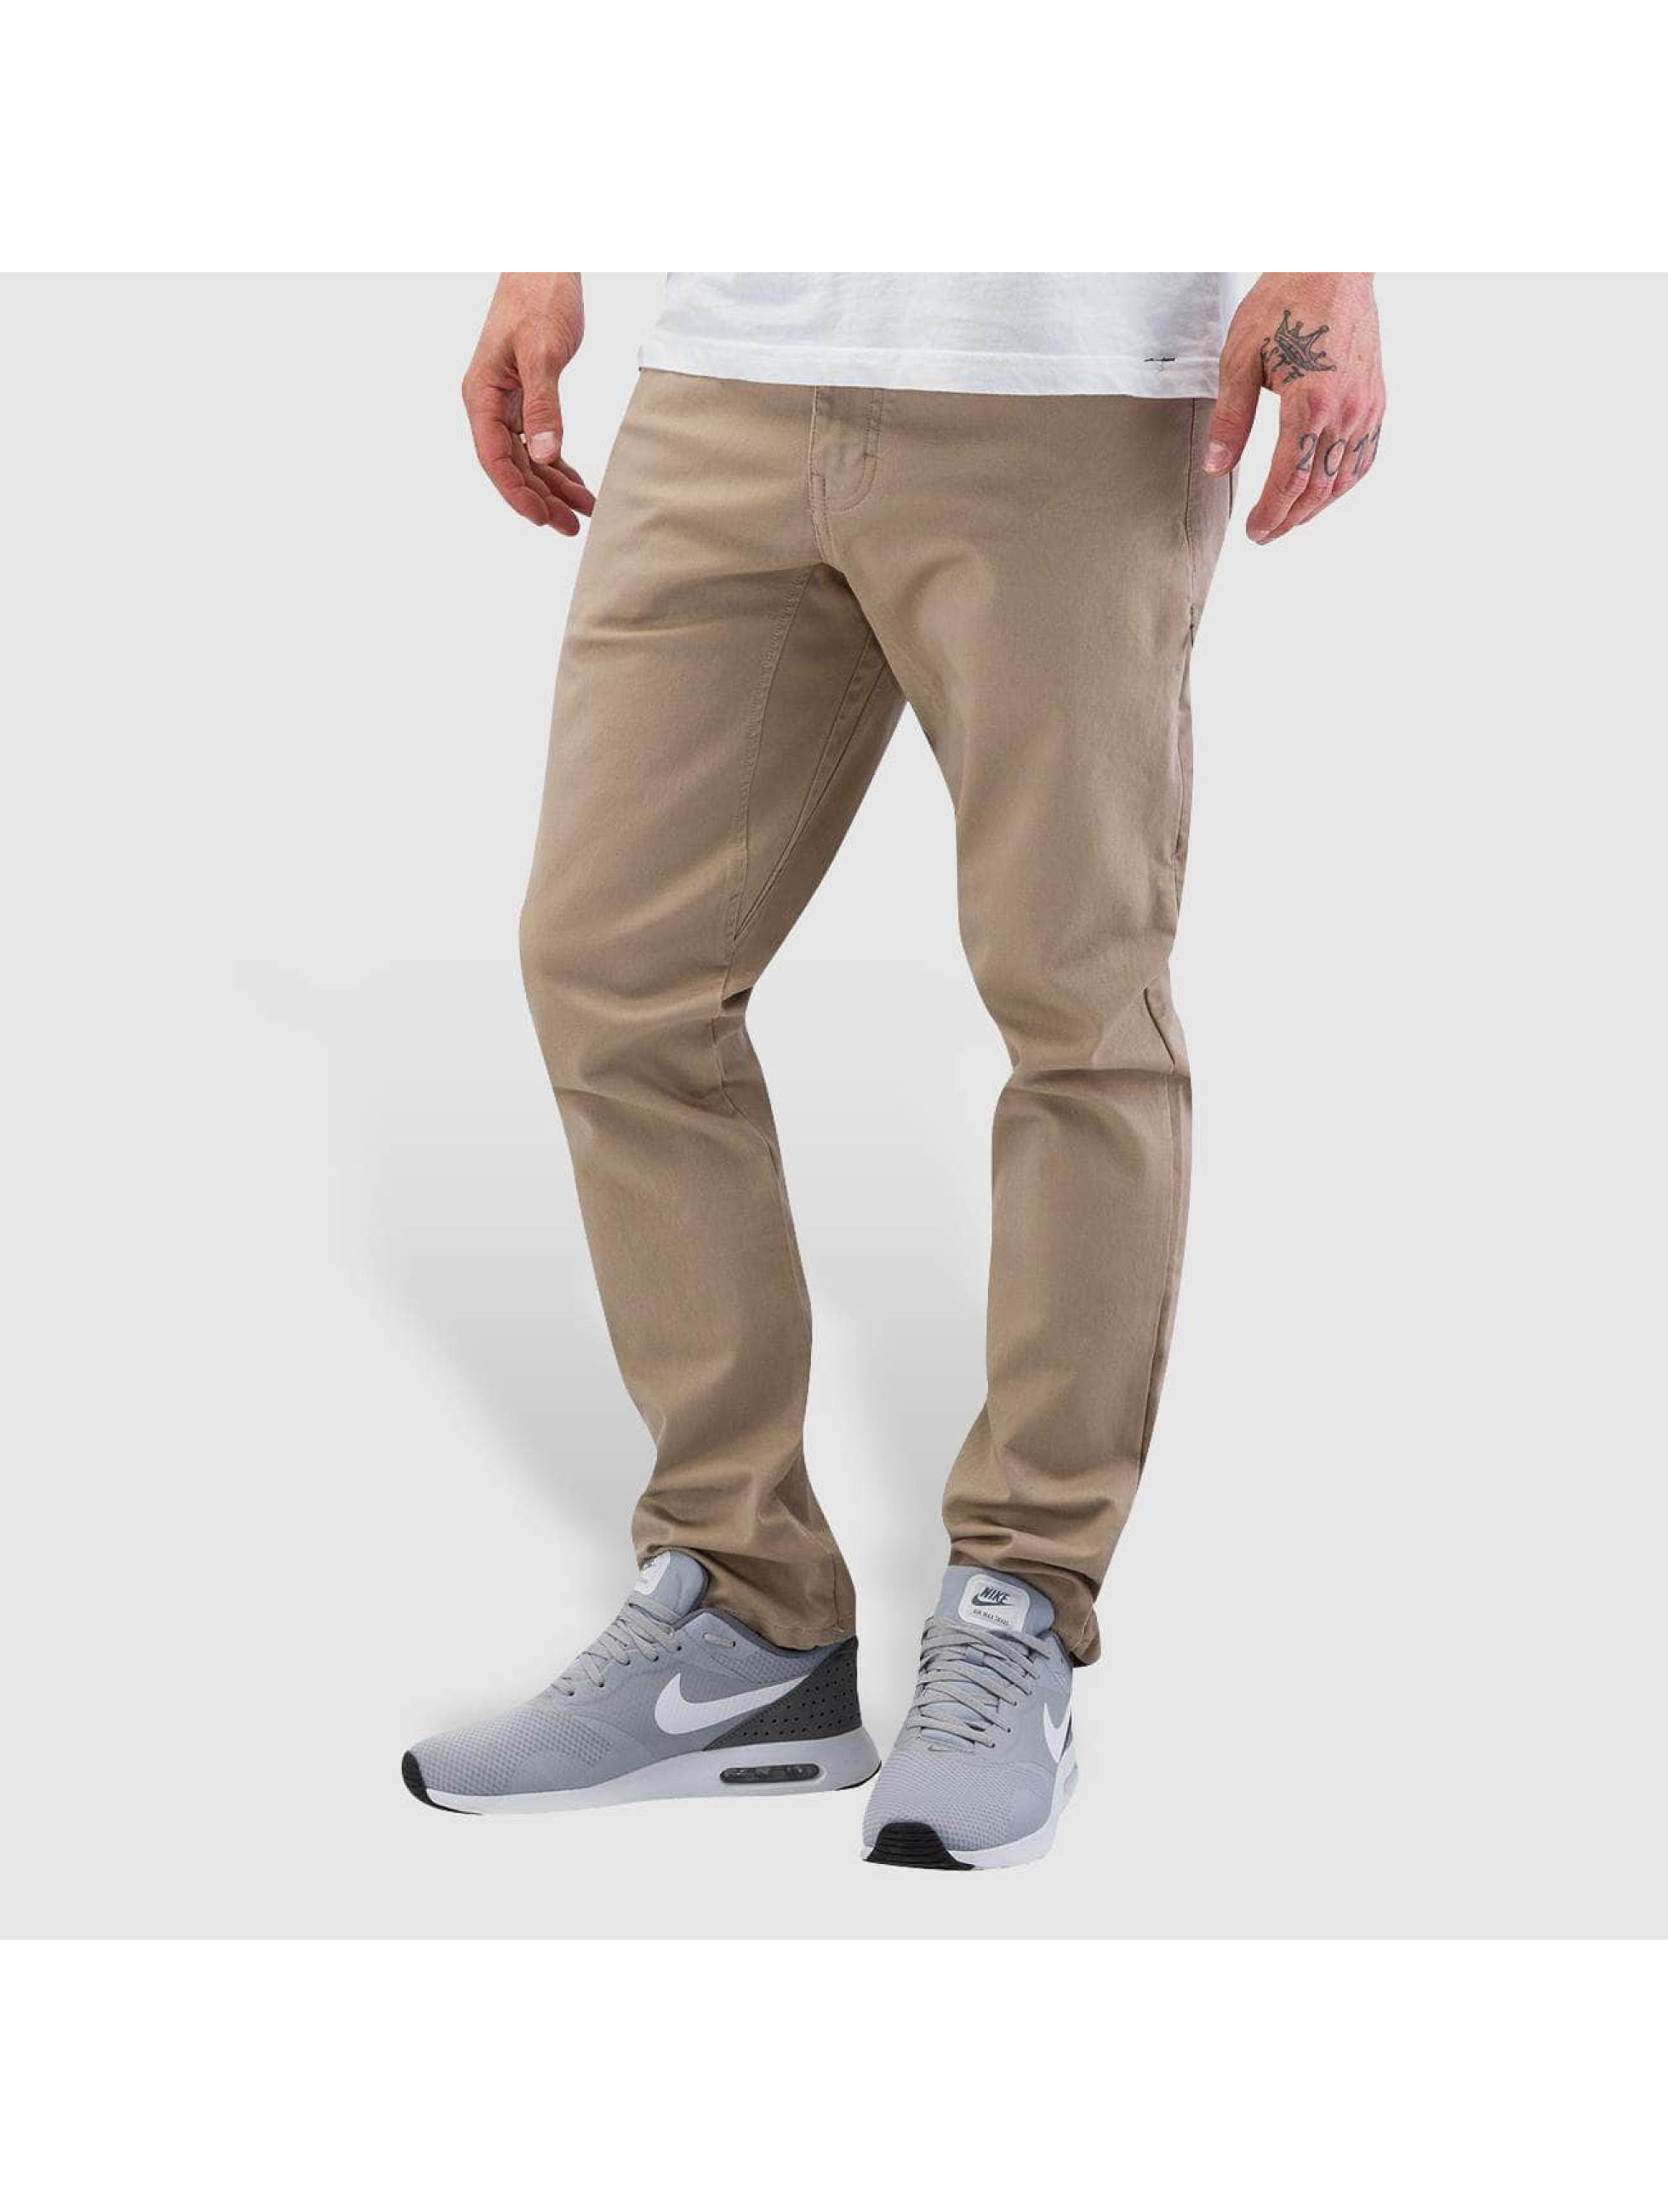 Chino SB 5 Pocket in khaki